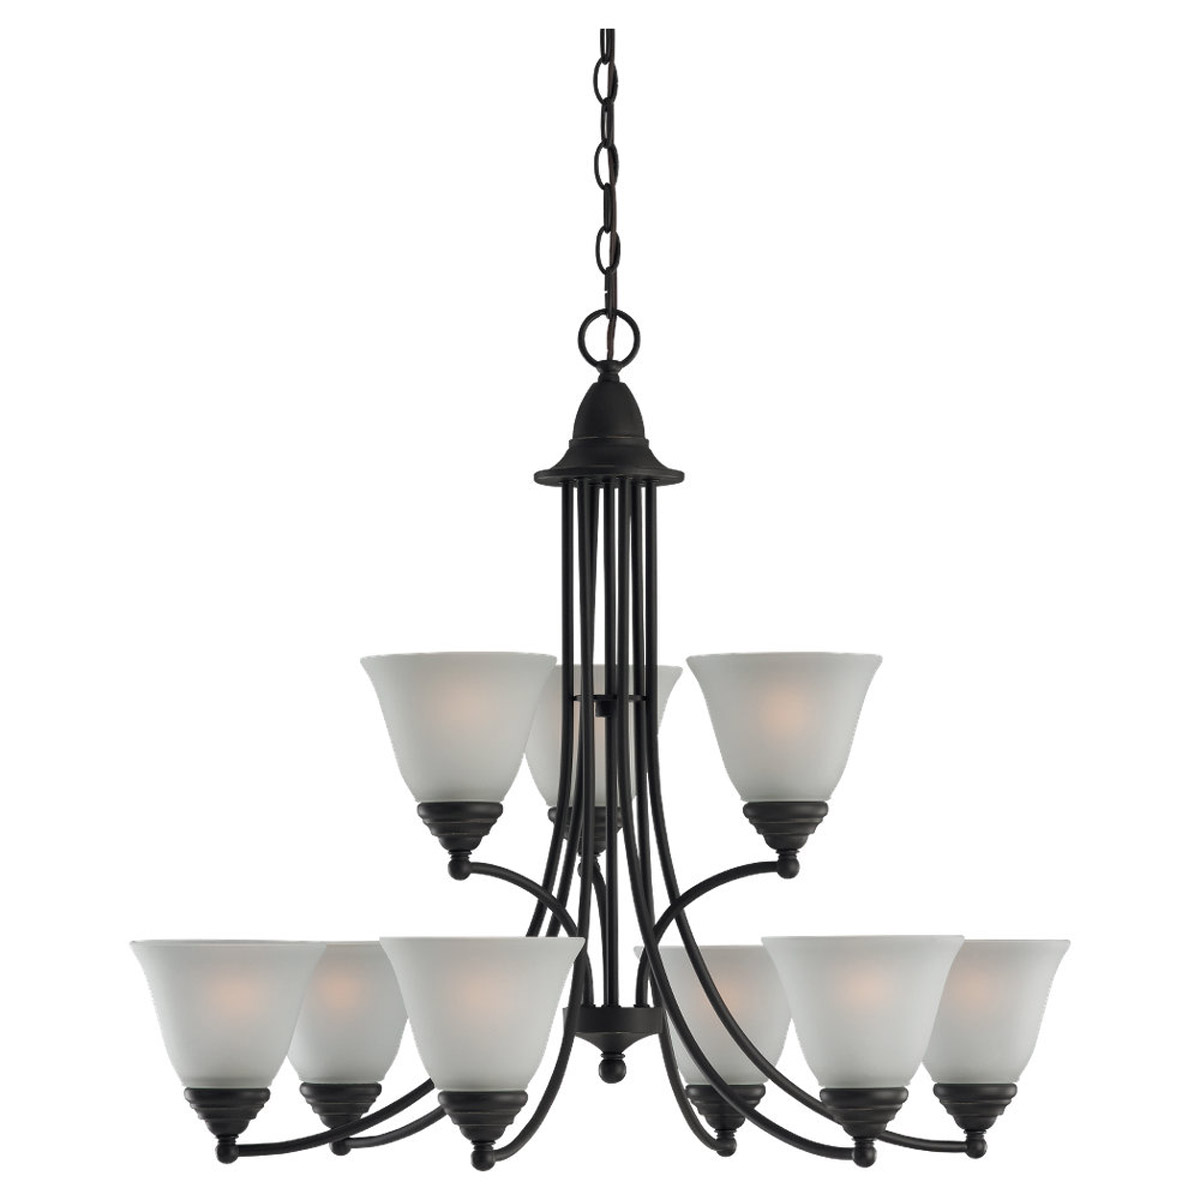 Sea Gull Lighting Albany 9 Light Chandelier in Heirloom Bronze 31577-782 photo